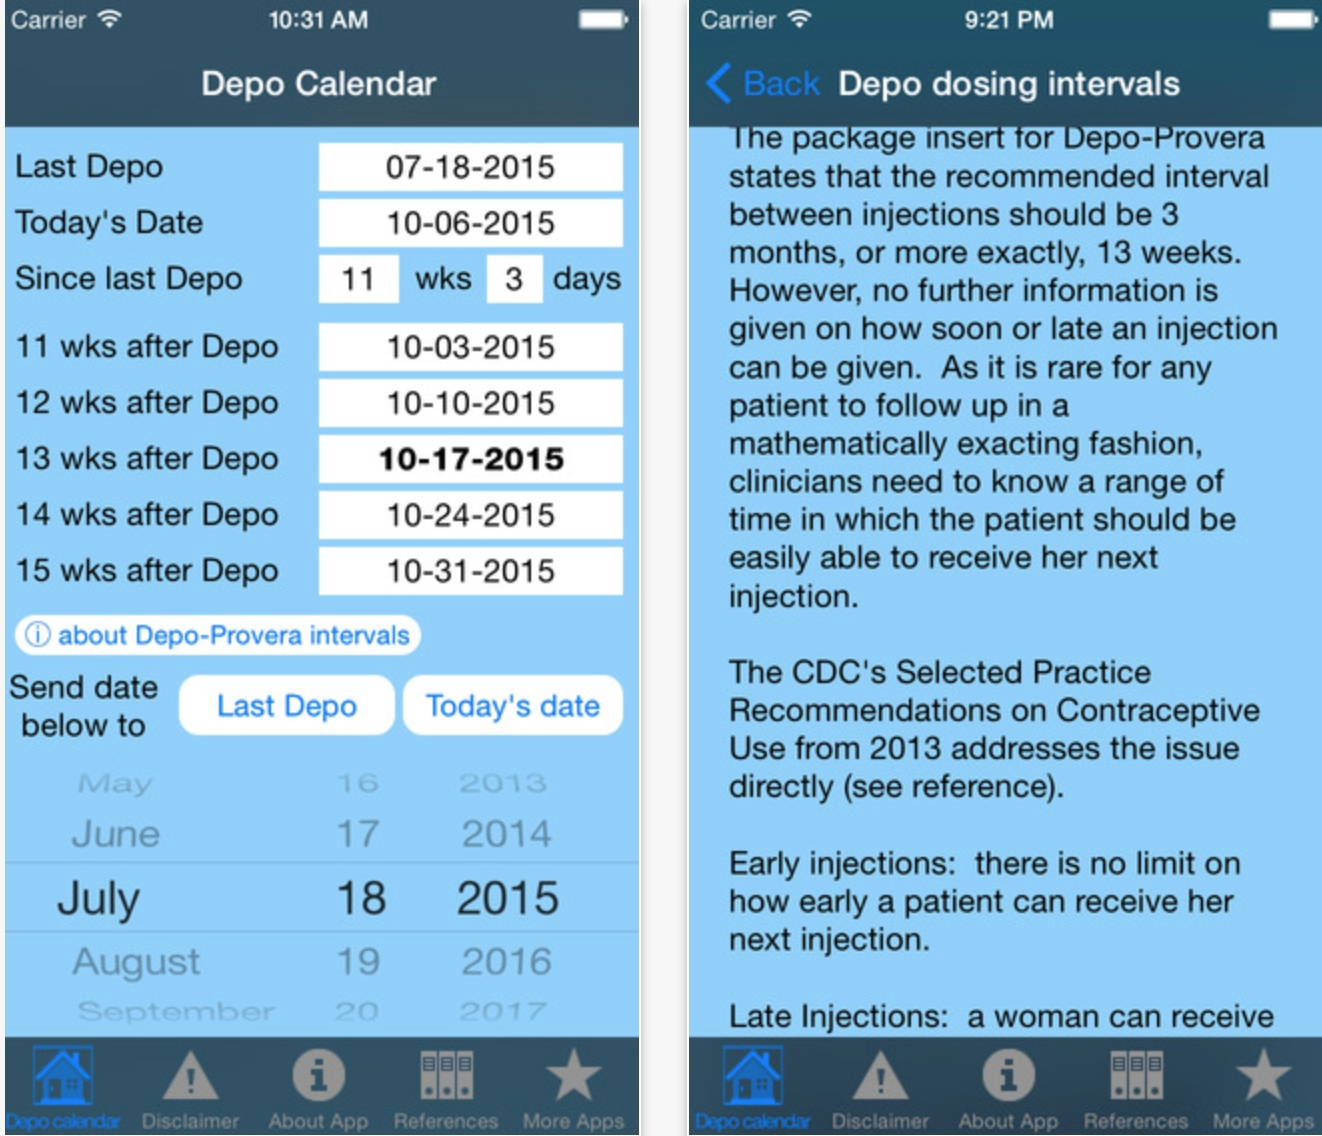 Depo Calendar App Could Significantly Improve Contraception  Depoprovera Schedule